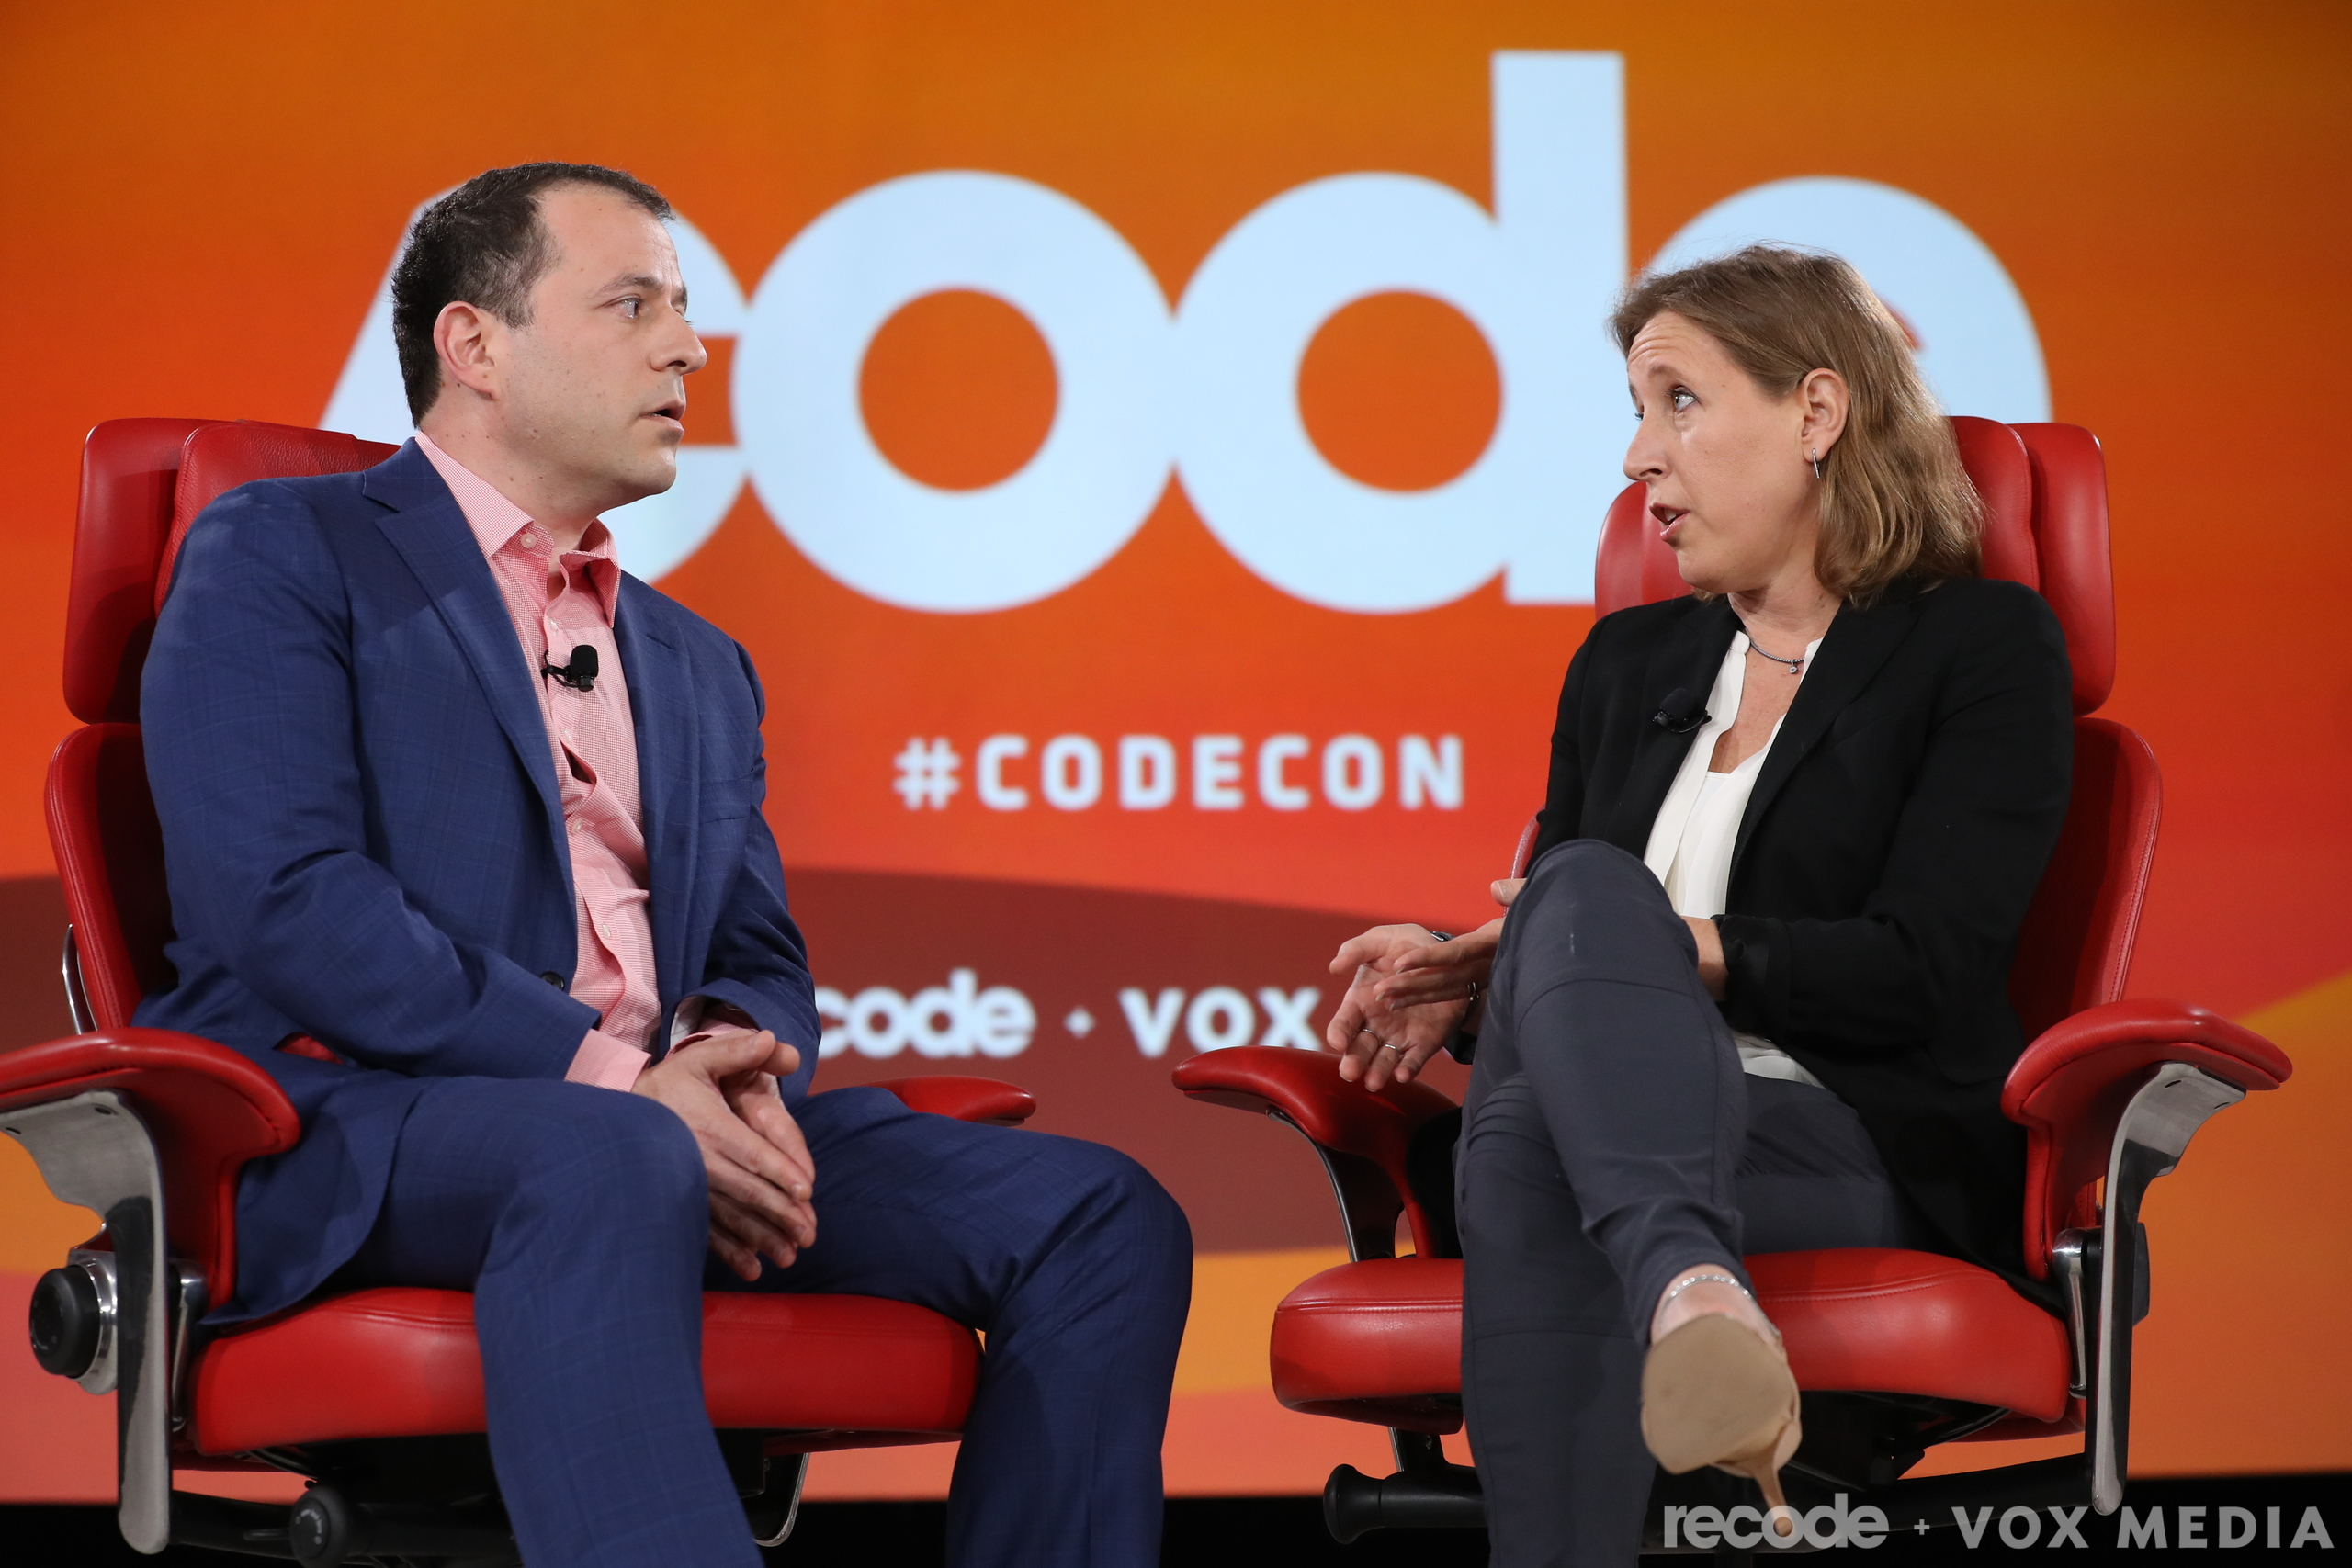 techcrunch.com - Kate Clark - Startups Weekly: #CodeCon, the 'techlash' and ill-prepared CEOs